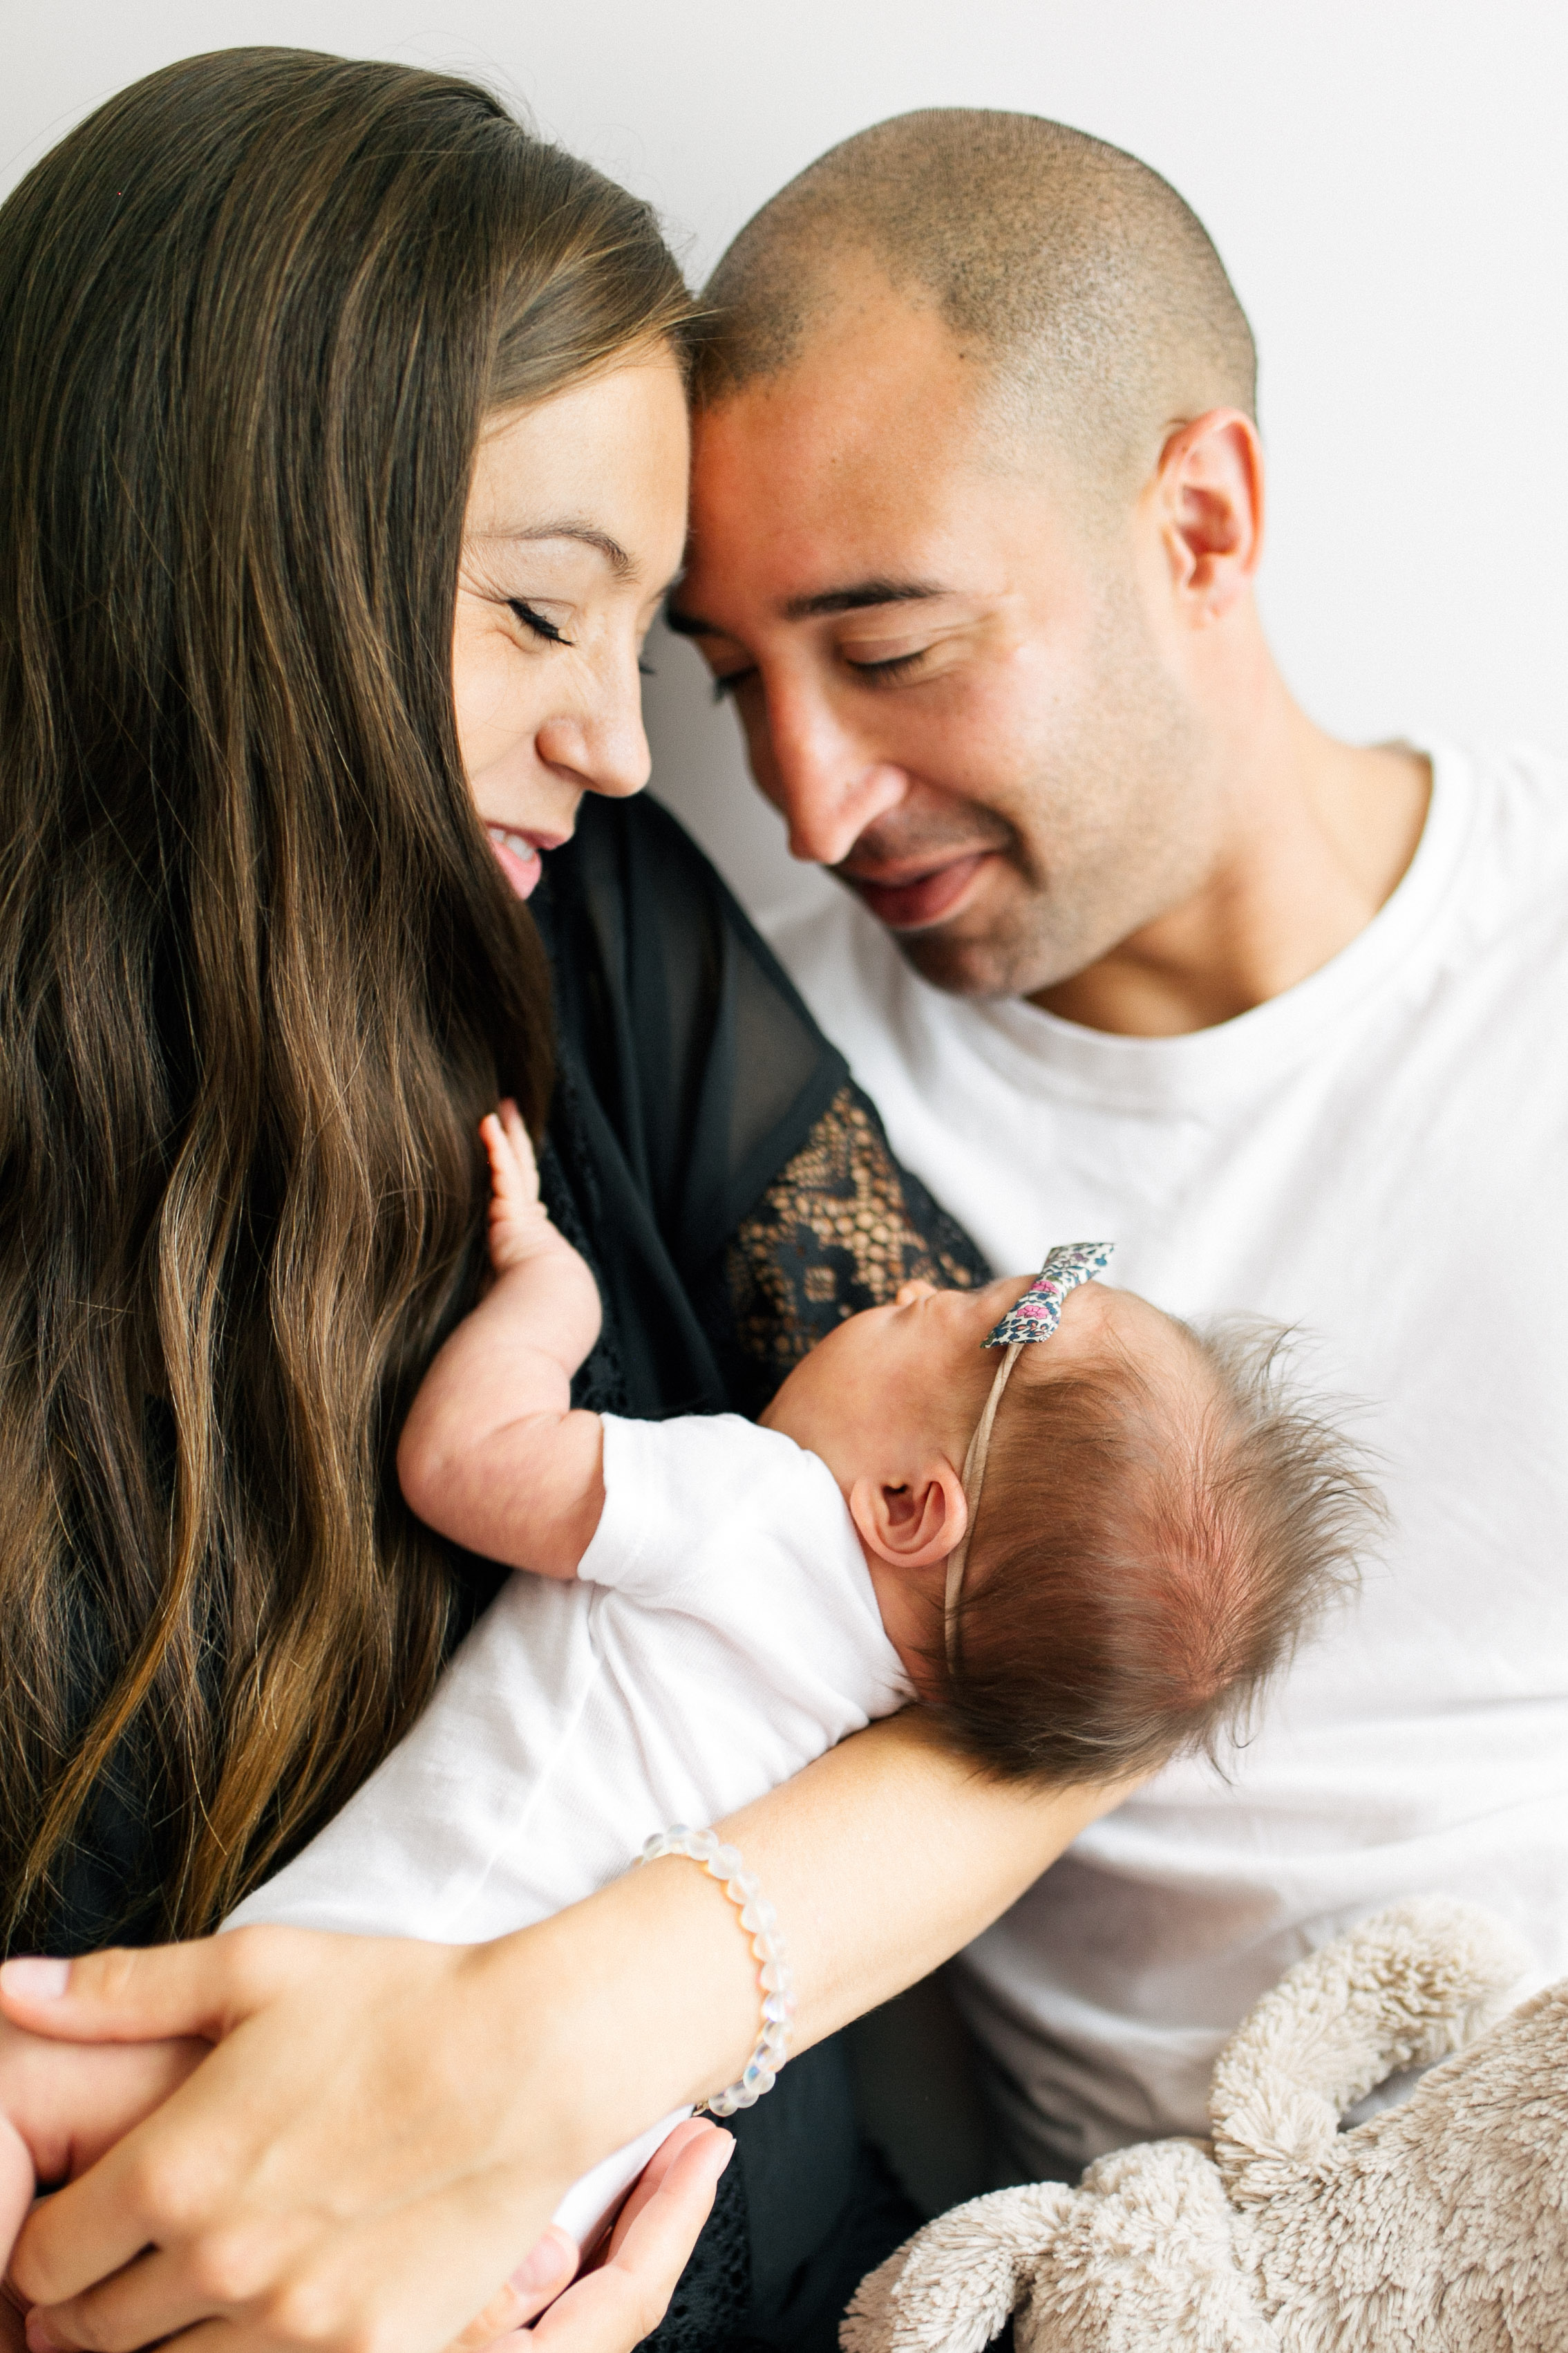 Newborn Family Session, Natural Light in Home, toddler in house lifestyle | Chelsea Macor Photography Seattle WA-7.jpg